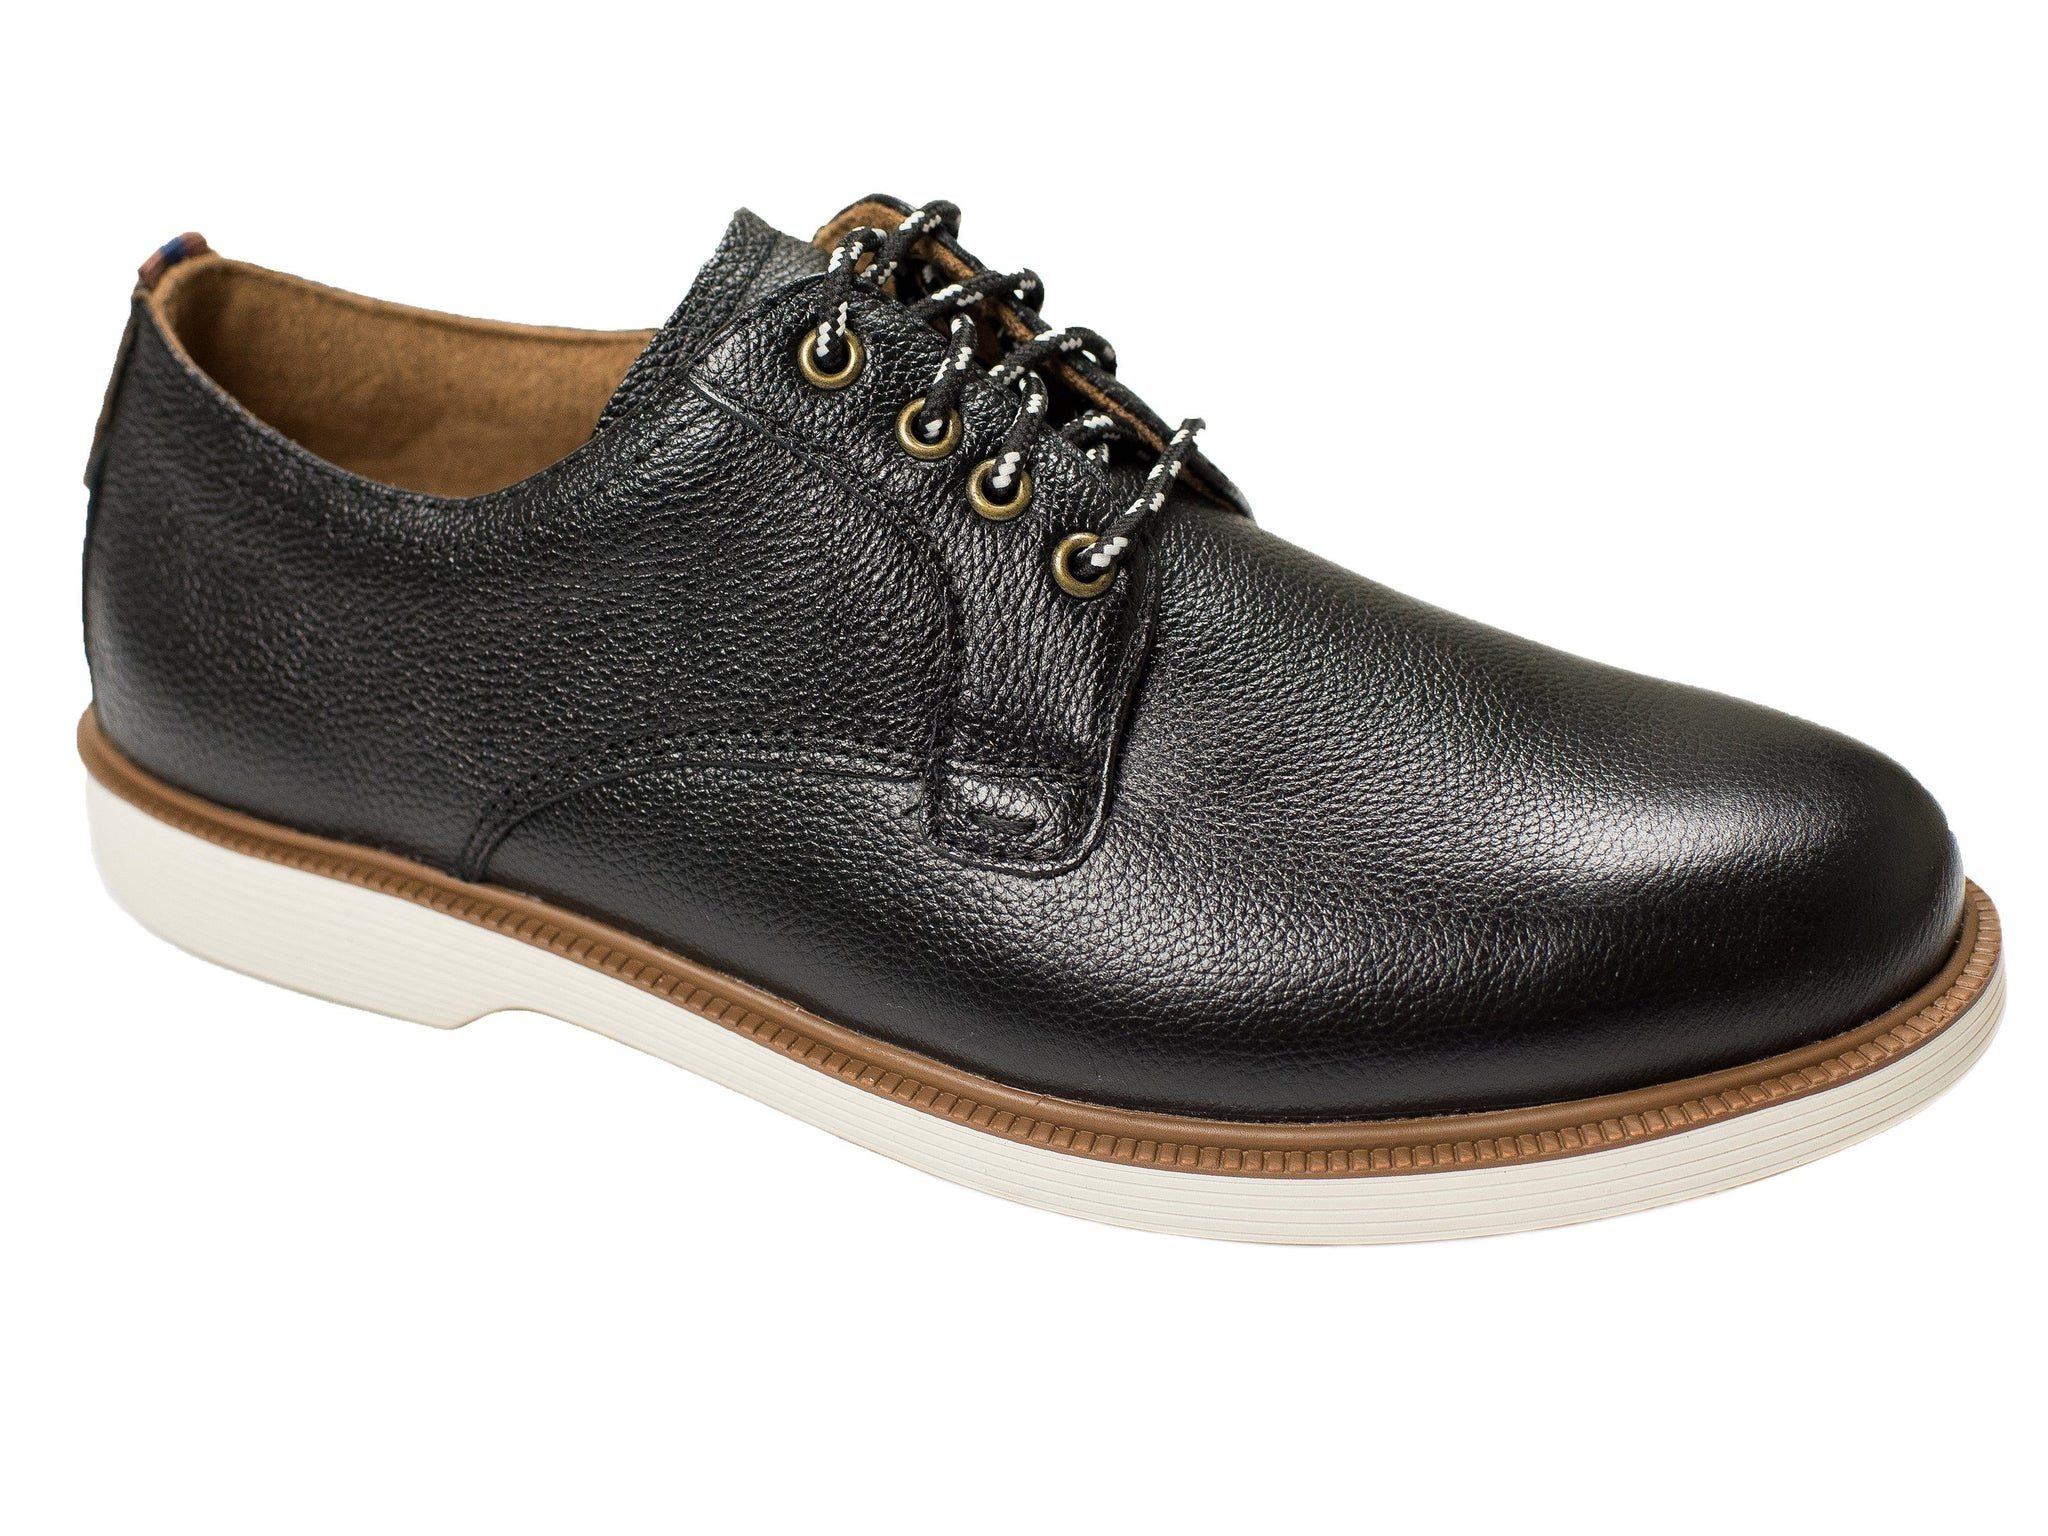 Florsheim 28409 Boy's Shoe - Plain Toe Ox-Pebble Grain-Black